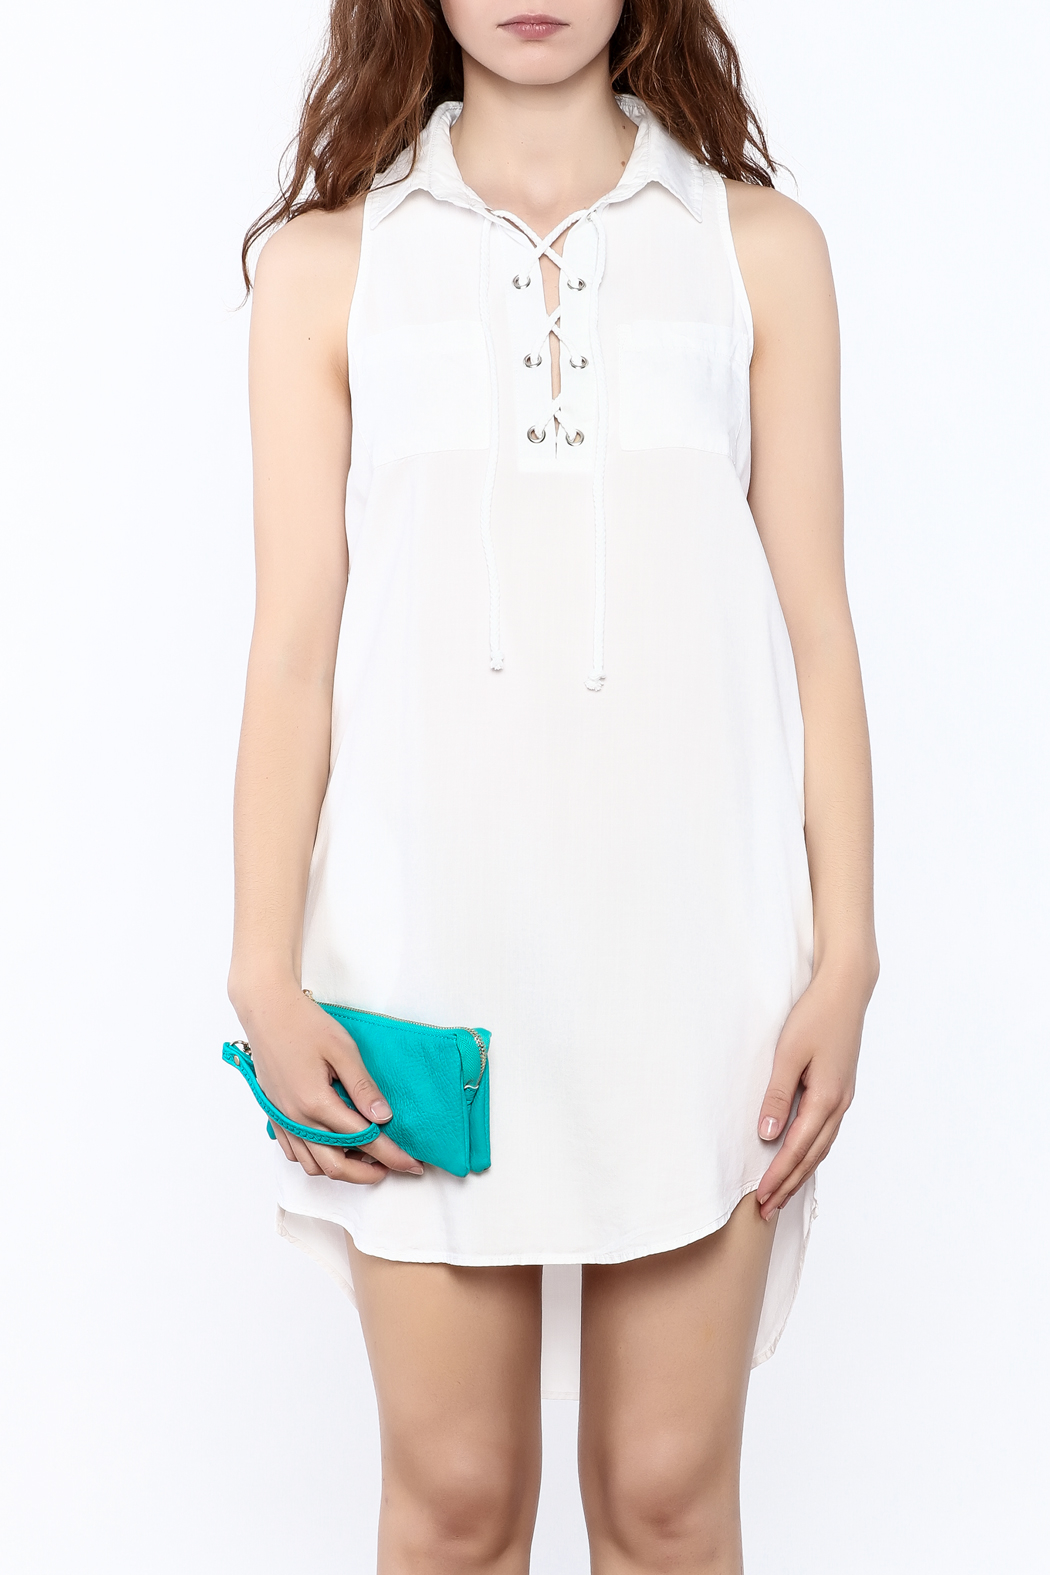 Velvet Heart White Sleeveless Dress - Side Cropped Image